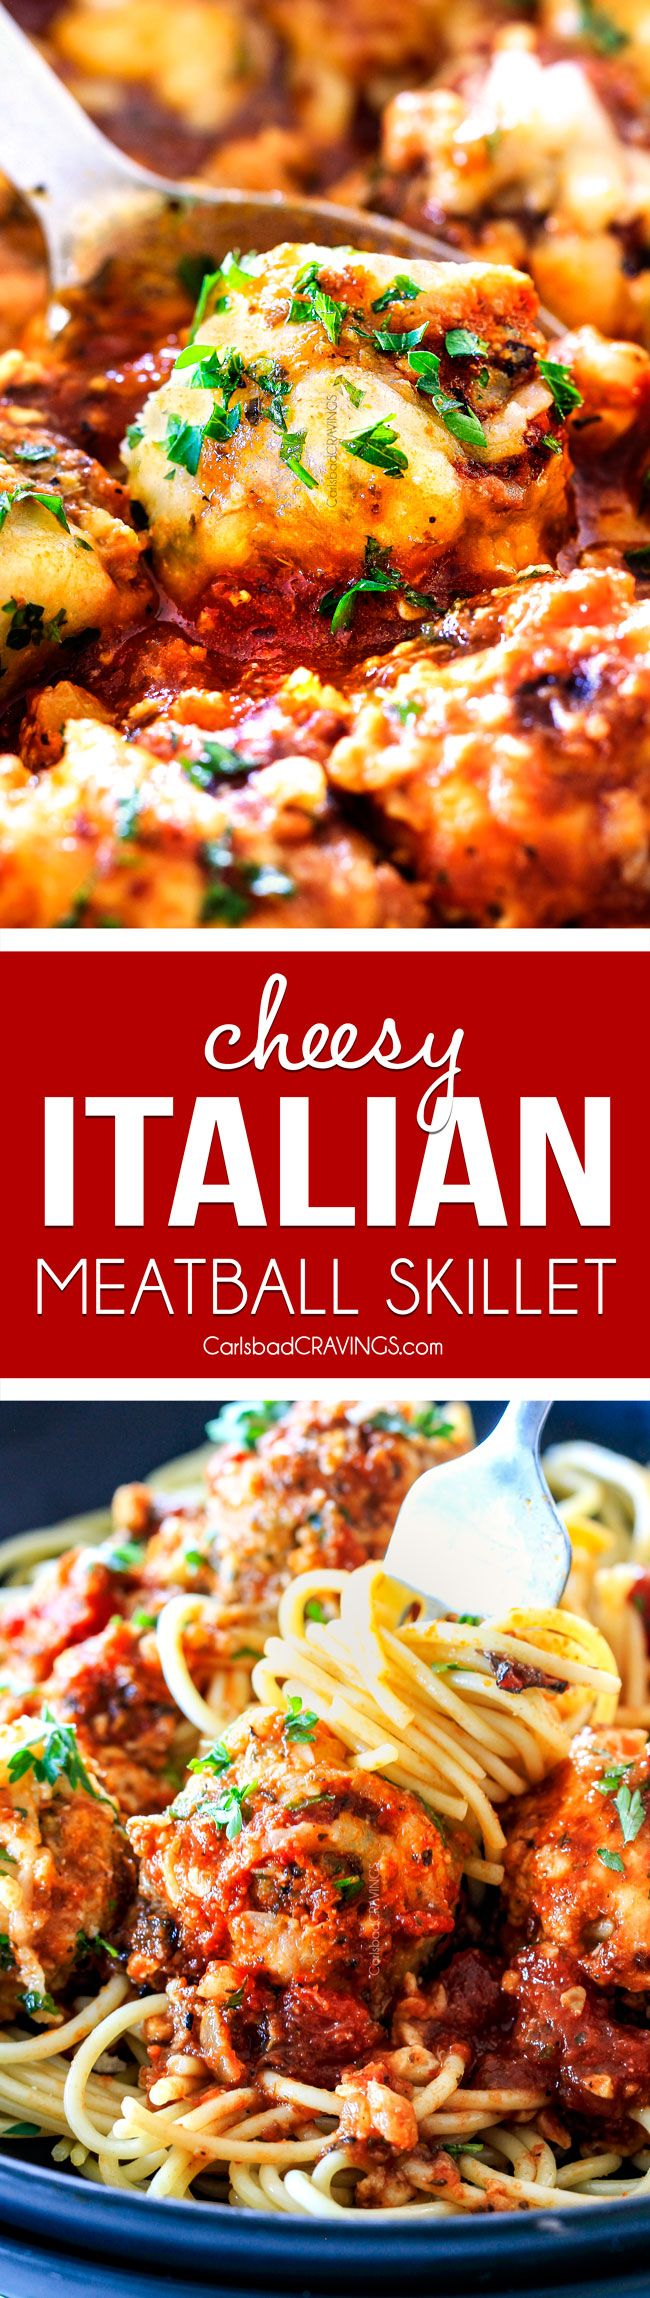 Easy, juicy, flavorful Italian meatballs bathed in rich marinara, smothered in mozzarella and Parmesan and baked to golden cheesy deliciousness! This is one of my favorite recipes EVER and they make the BEST spaghetti and meatballs!